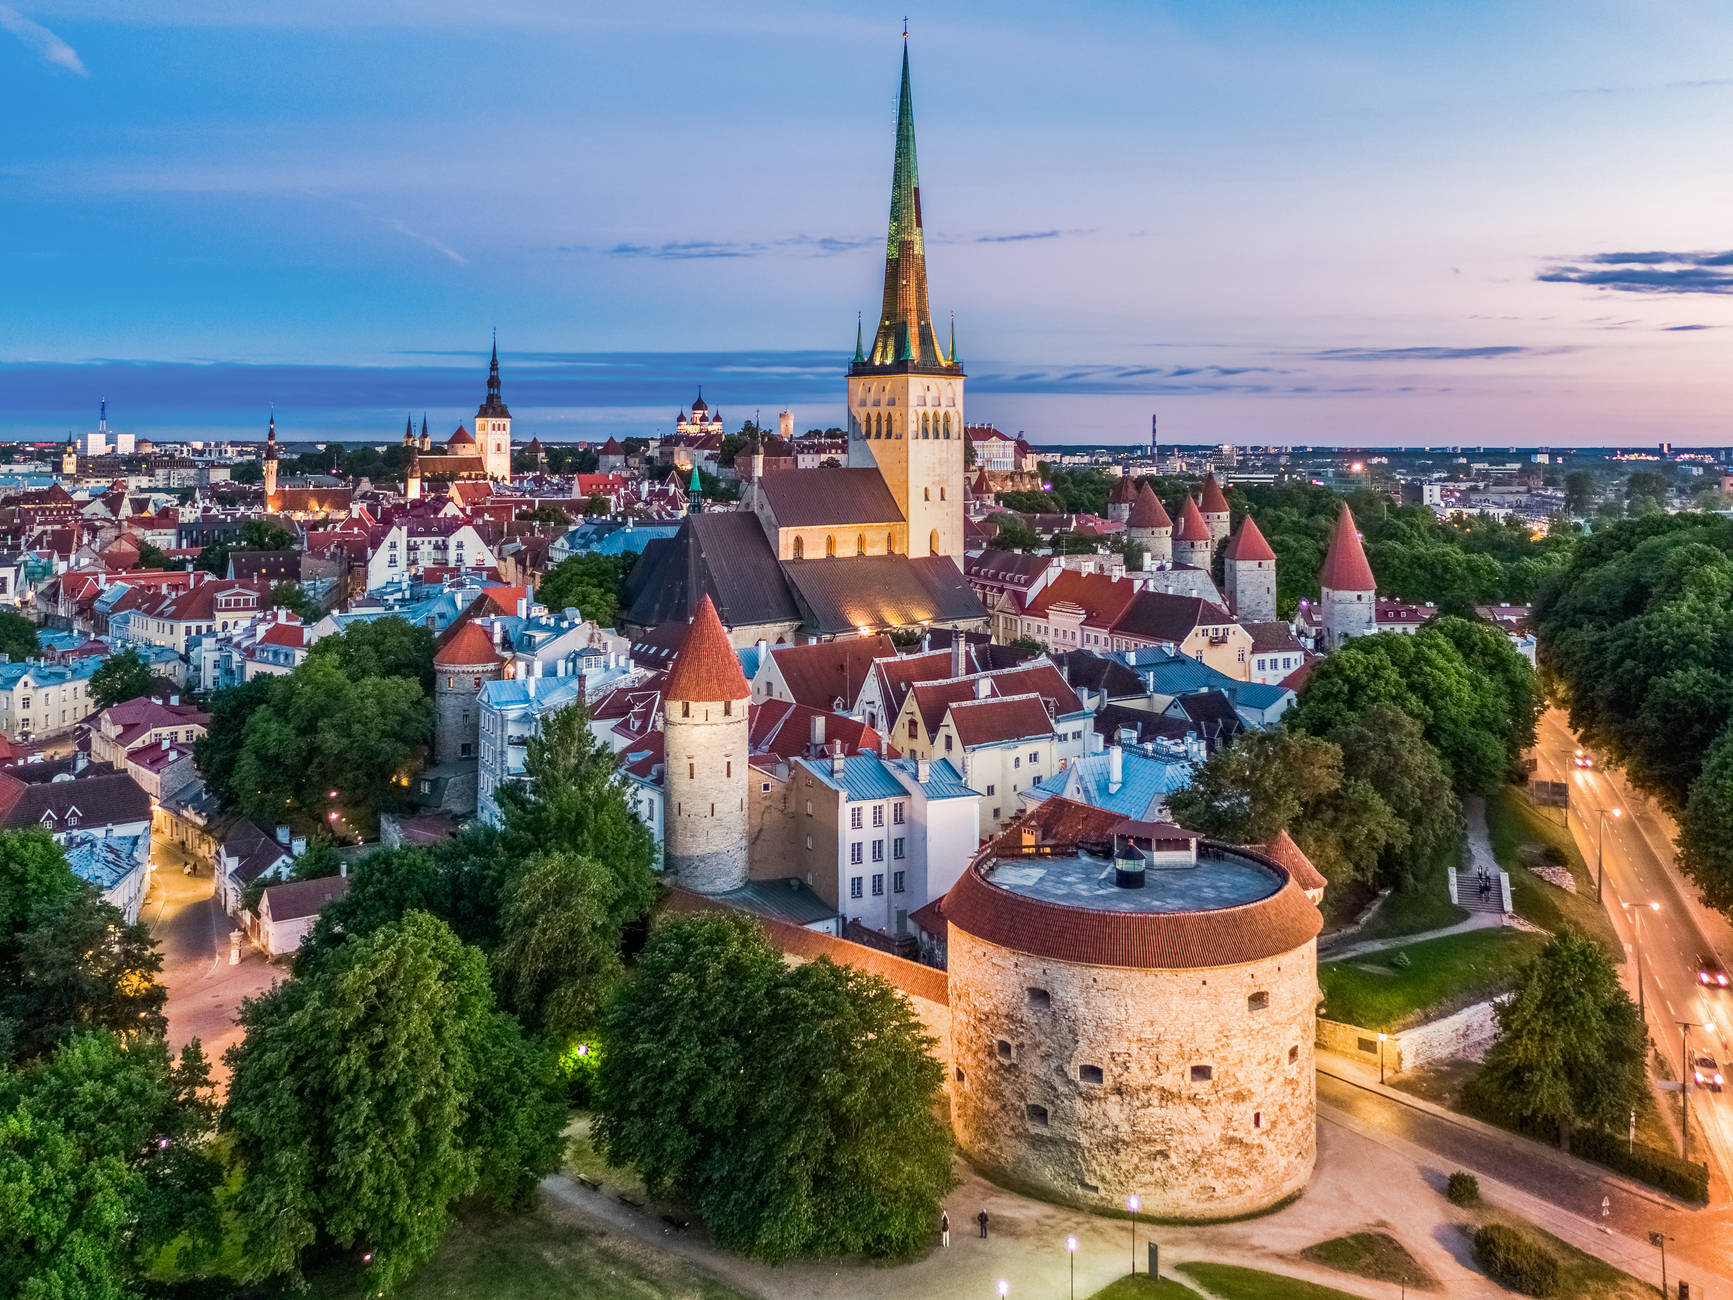 A nighttime view od the Old Town and the medieval Fat Margaret cannon tower in Tallinn, Estonia